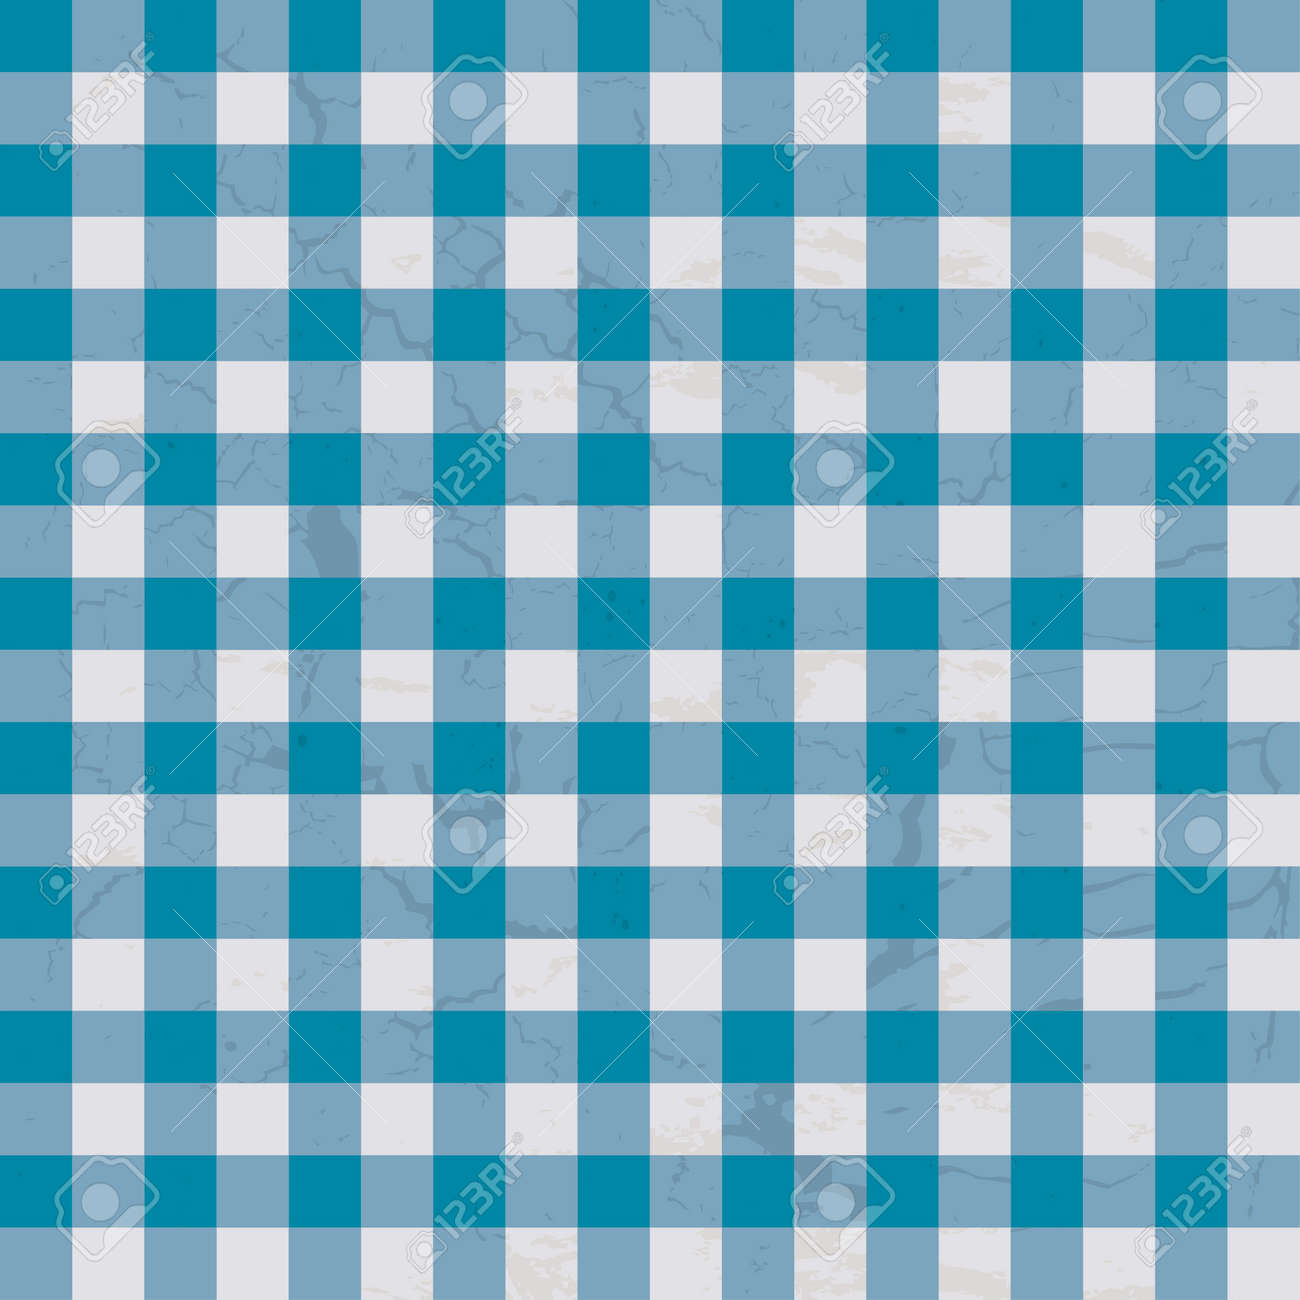 Checkered Design Checkered Blue And White Table Cloth With Repeat Design Royalty